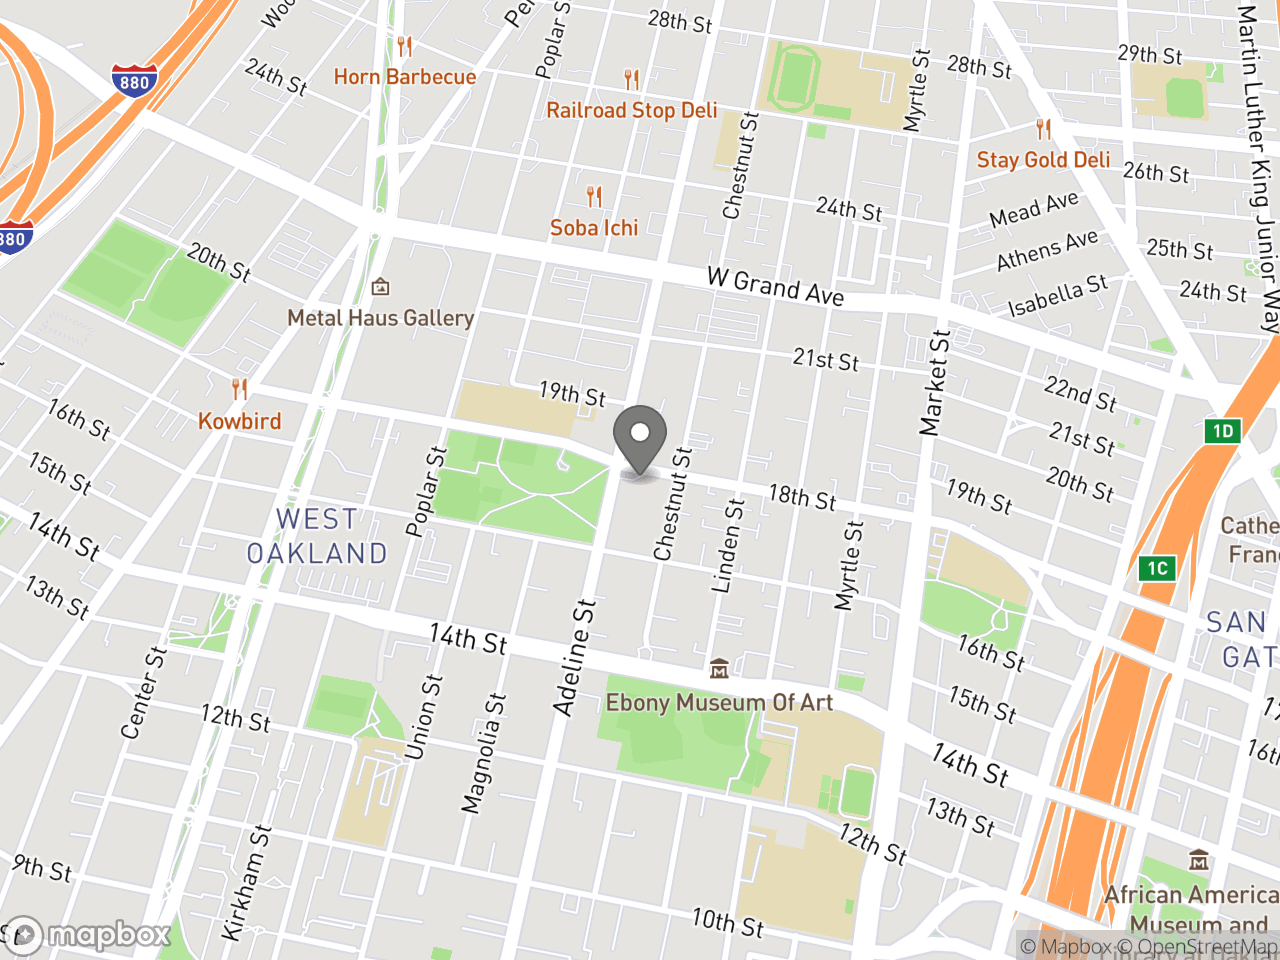 Map location for Spectrum Lunch at West Oakland Senior Center, located at 1724 Adeline St in Oakland, CA 94607